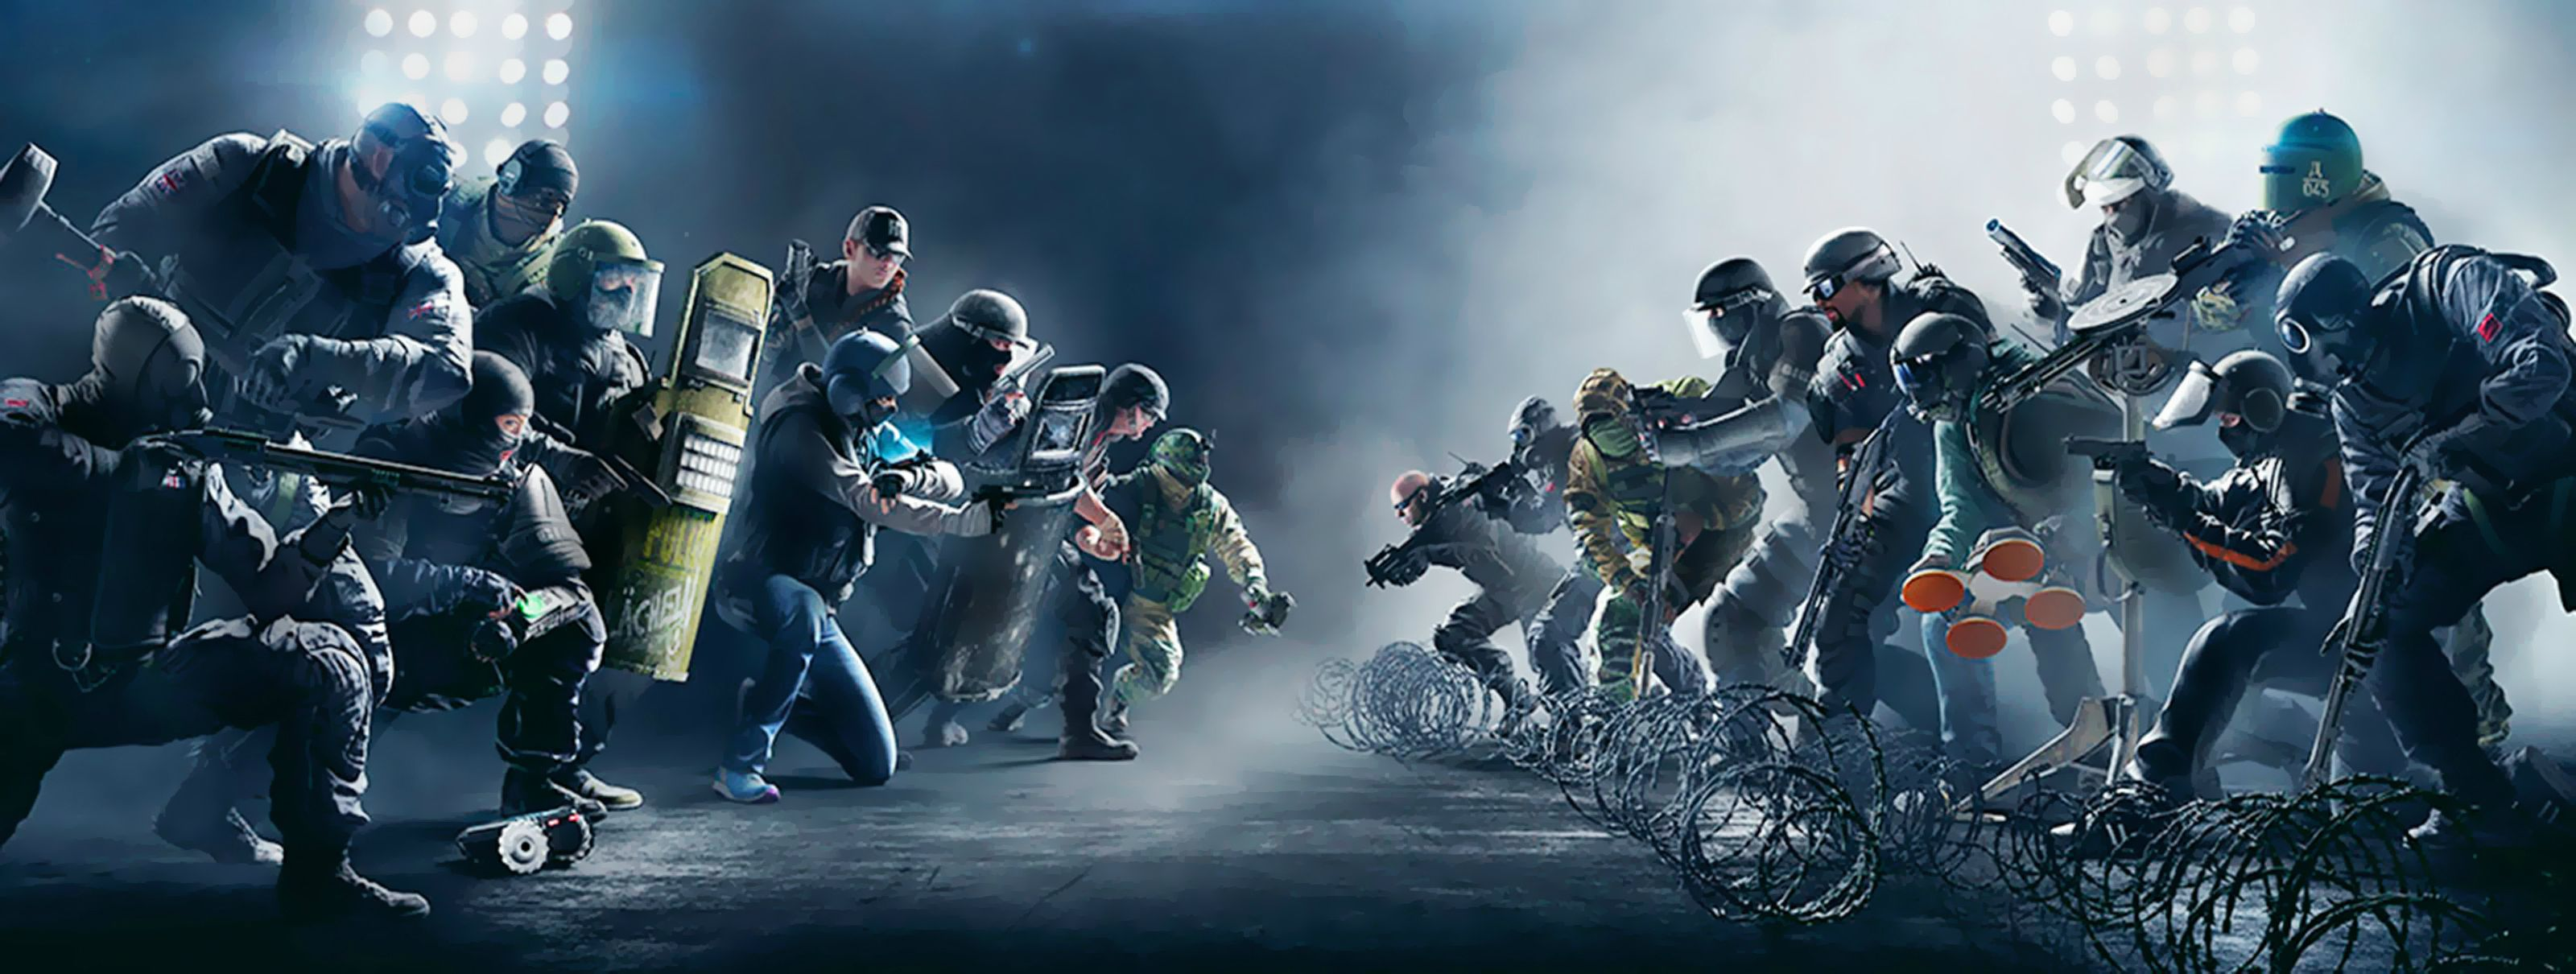 27156890 Rainbow Six Siege Wallpapers - Rainbow Six Siege - HD Wallpaper